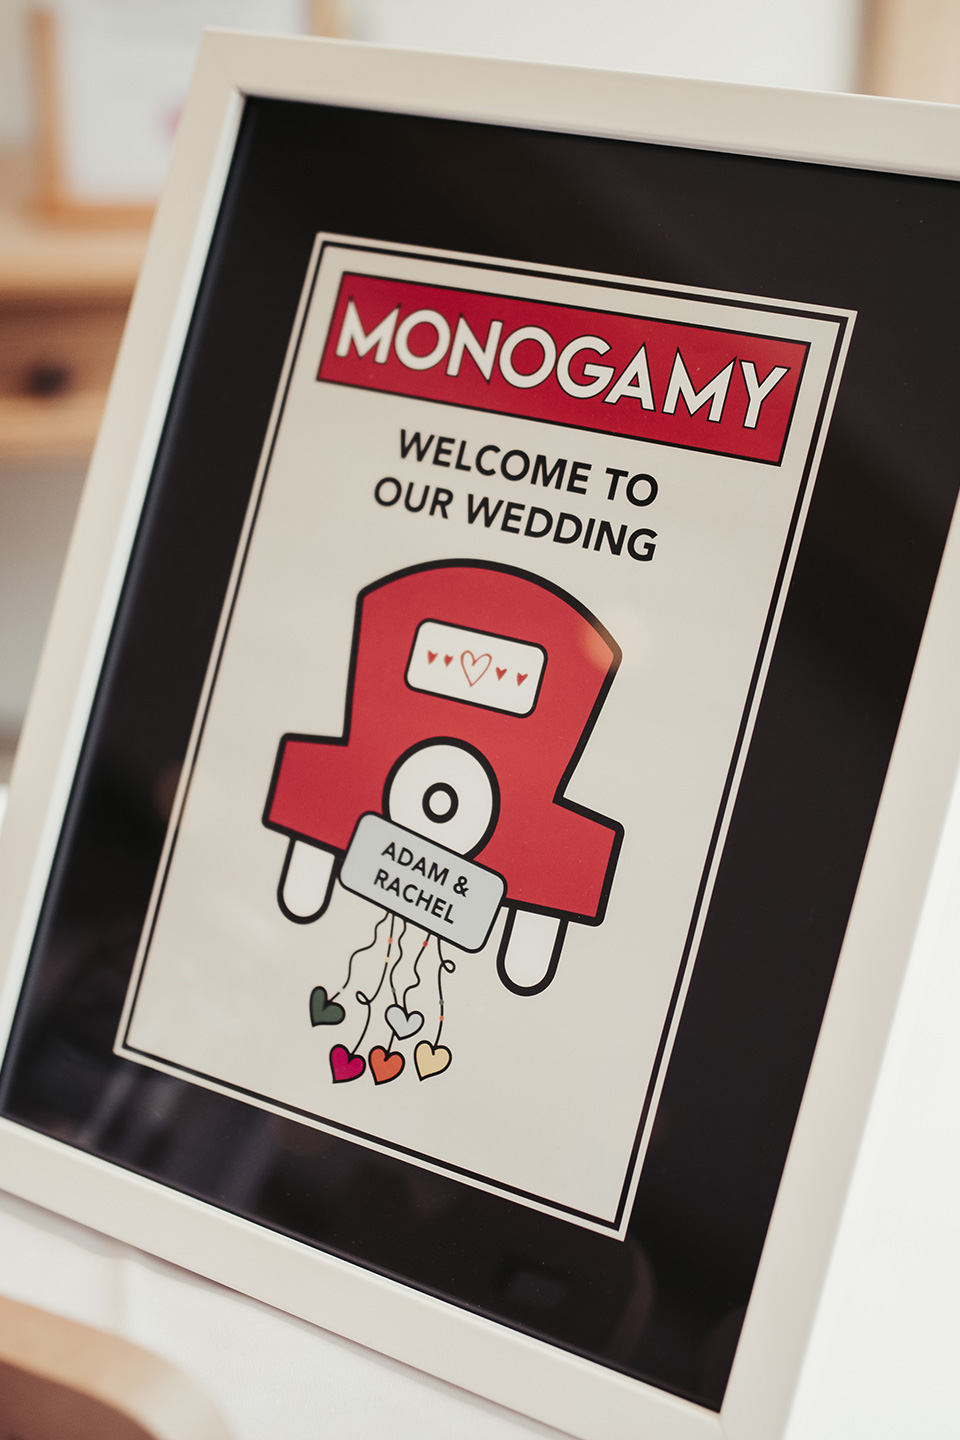 A wedding sign welcomes wedding guests with a monopoly theme